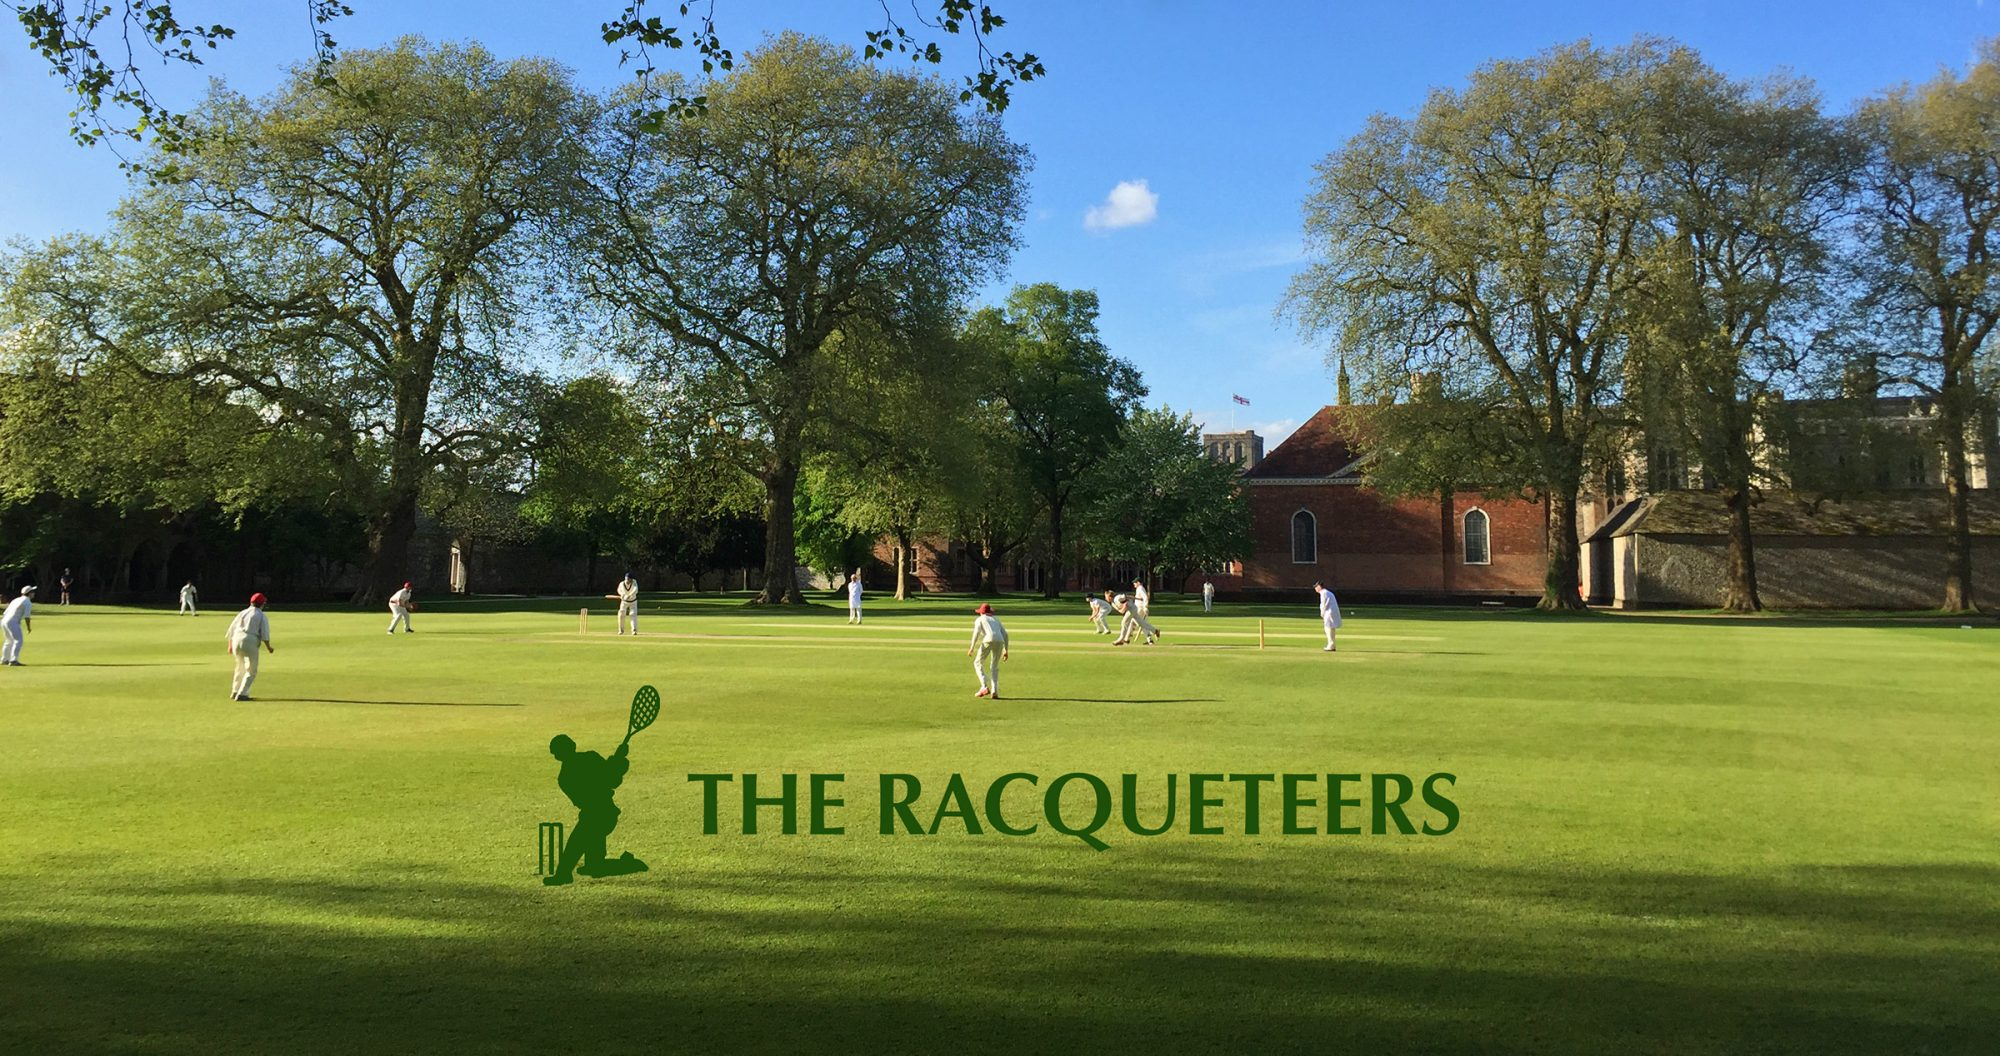 The Racqueteers Cricket Club